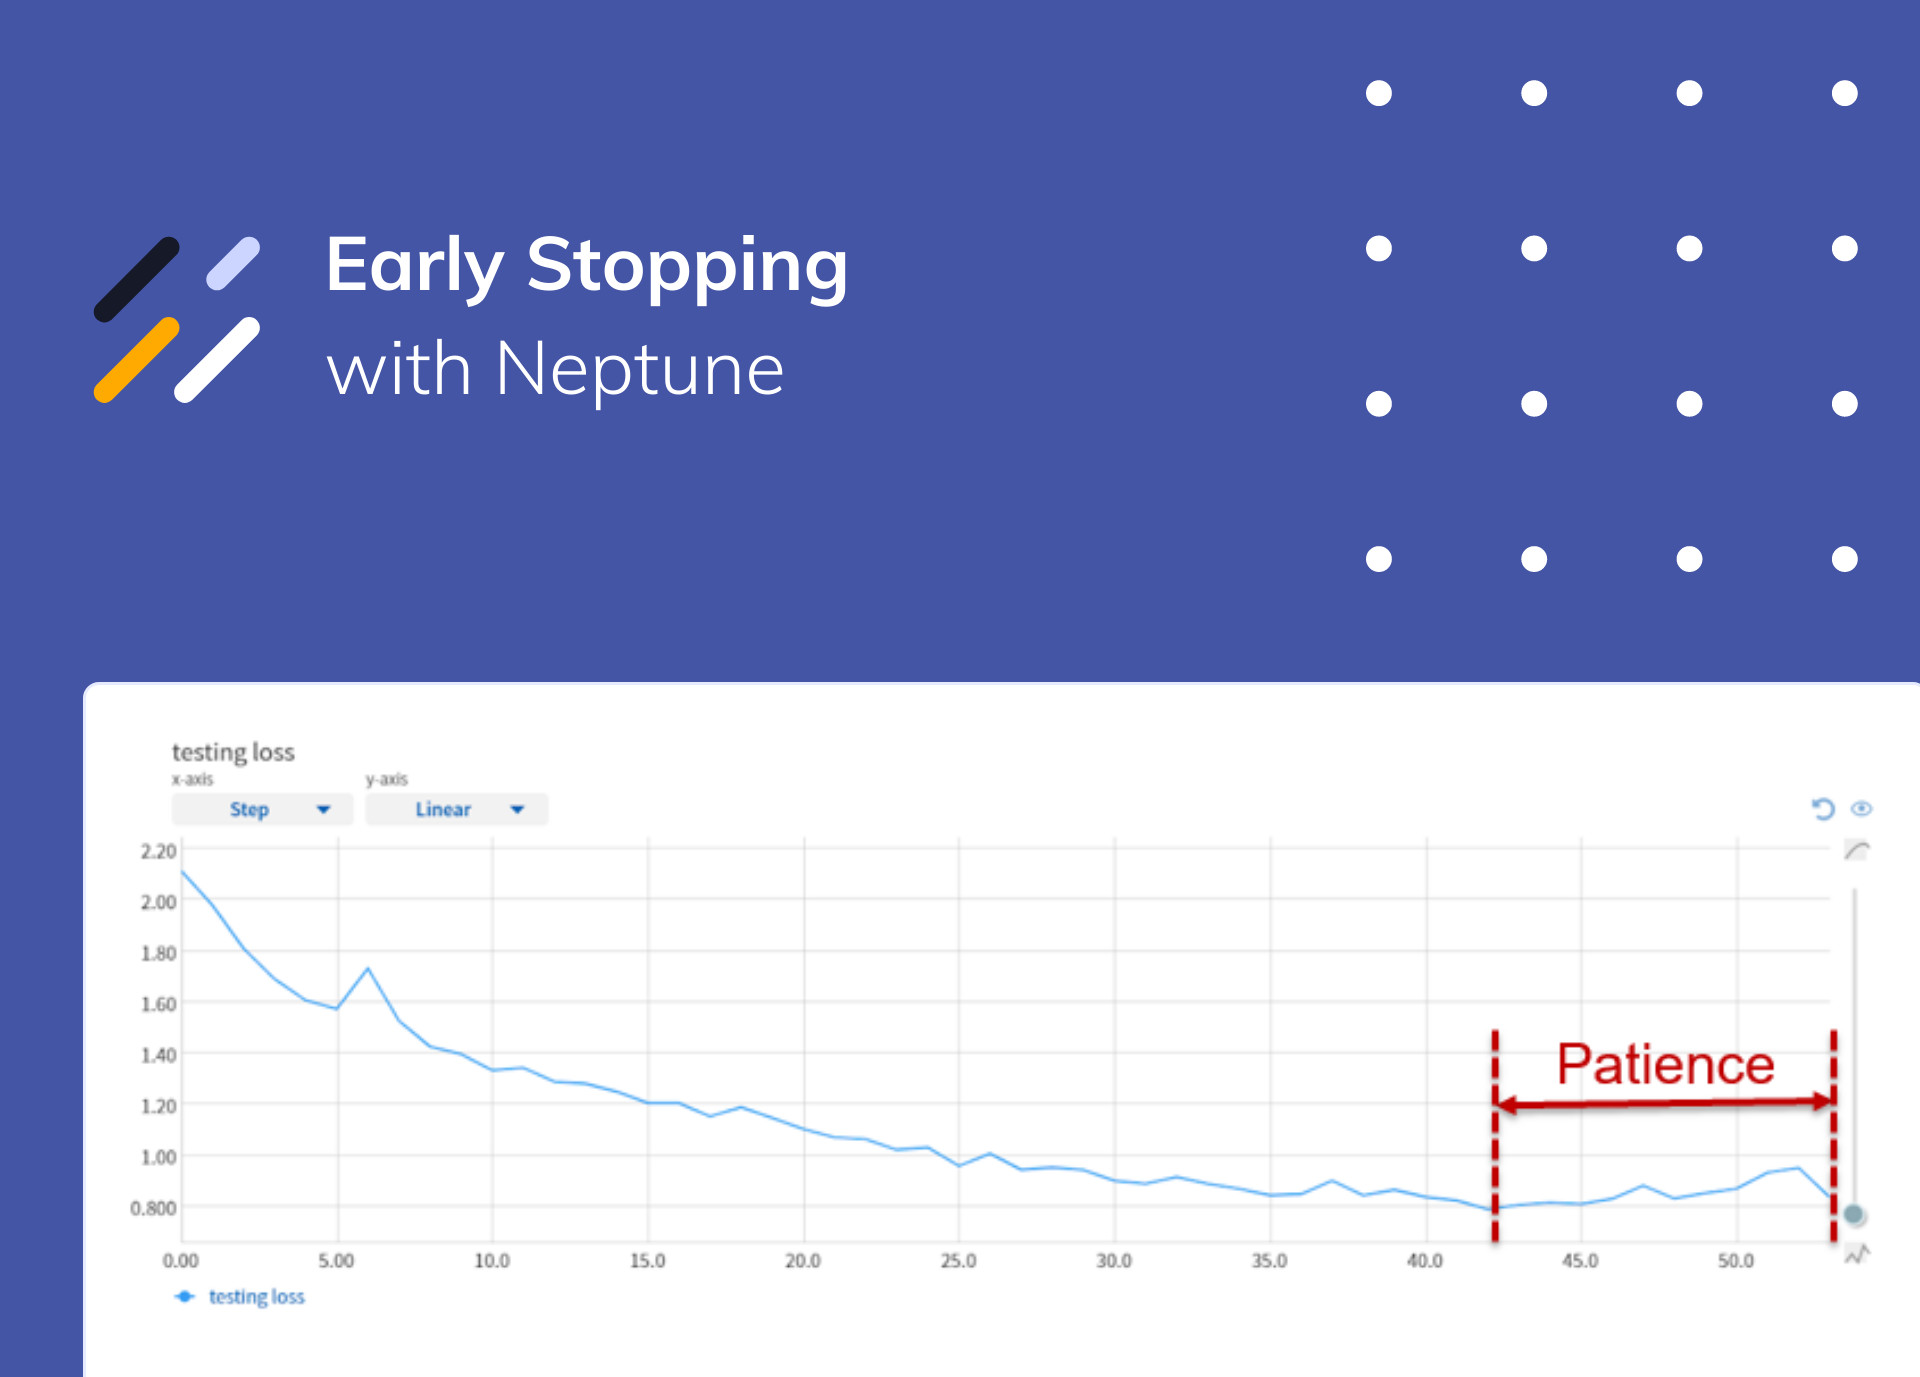 Early Stopping with Neptune